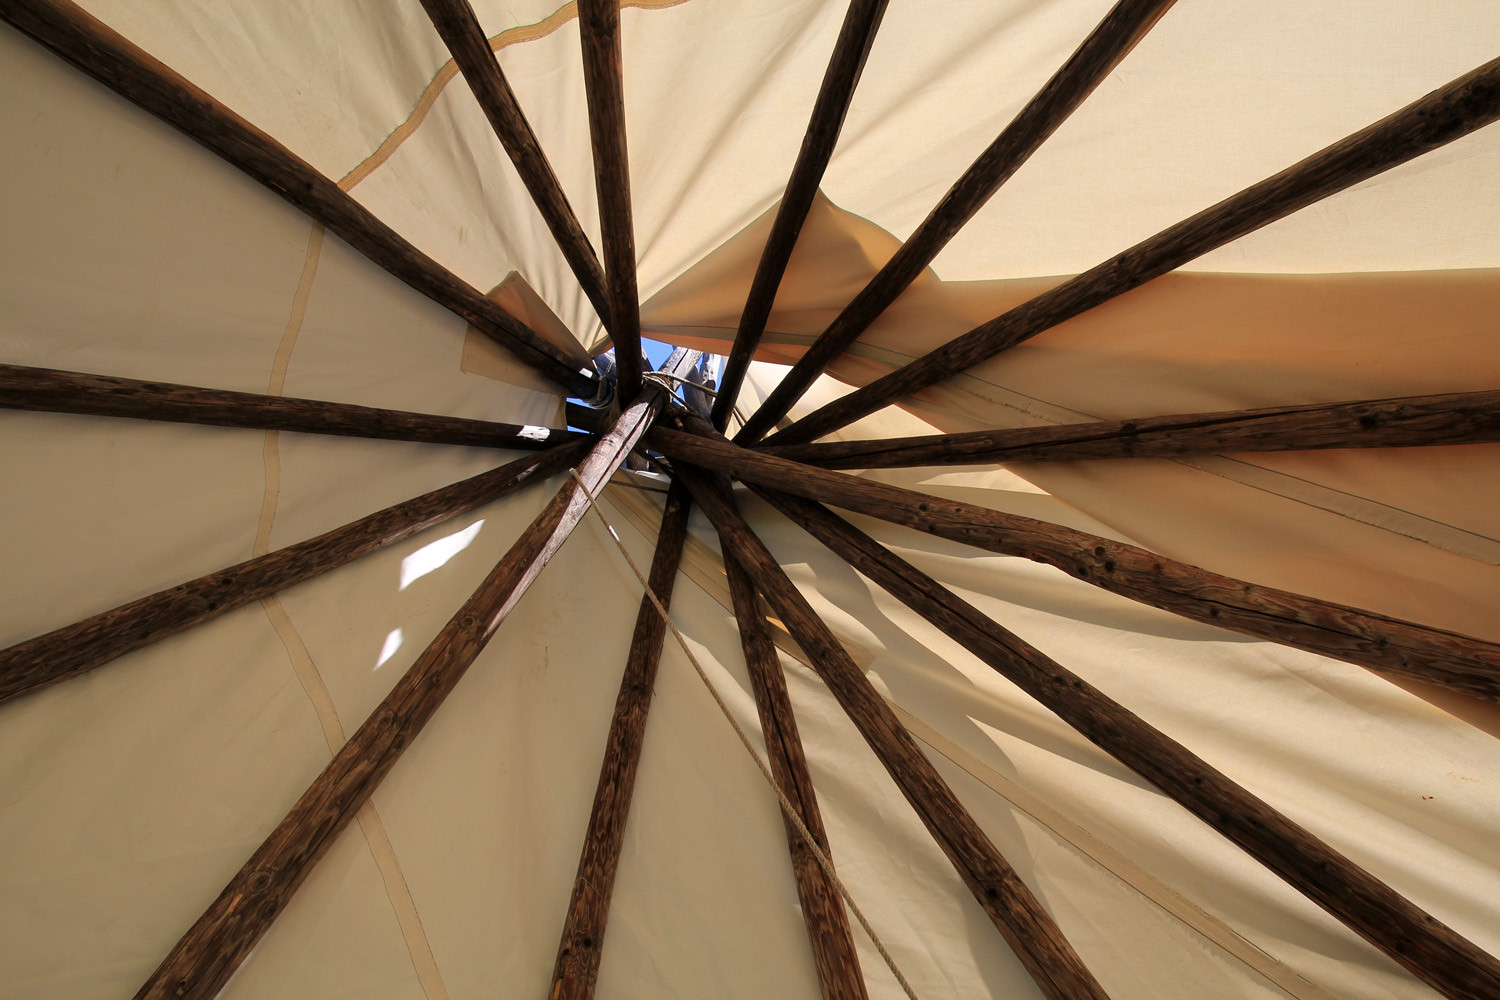 Detail of the Teepee